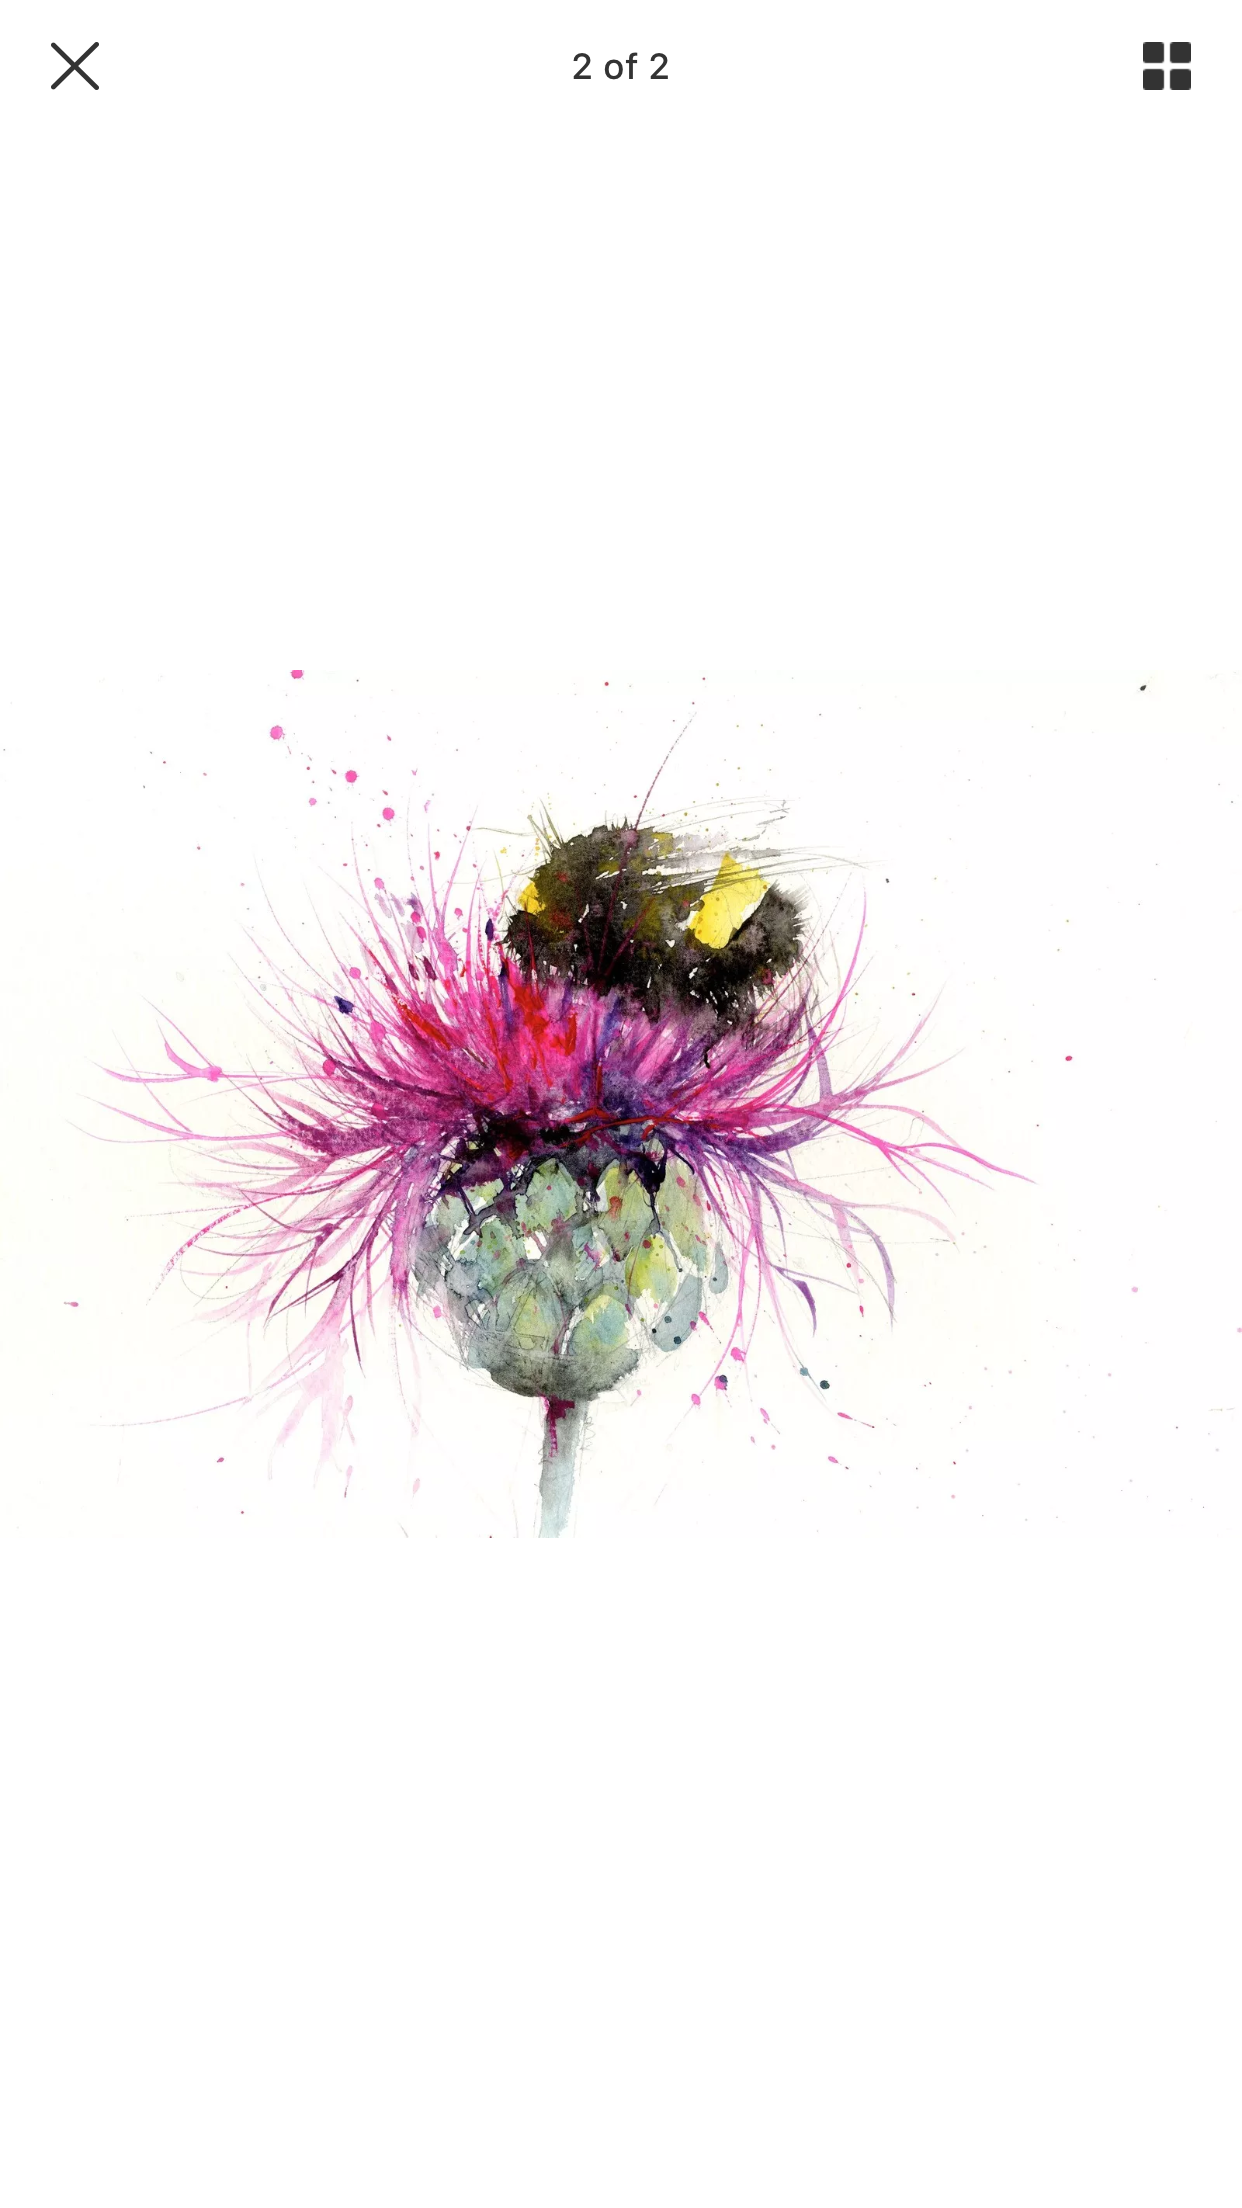 fe3247678c206 Bee on a thistle watercolour | art inspo | Watercolor art, Bee ...